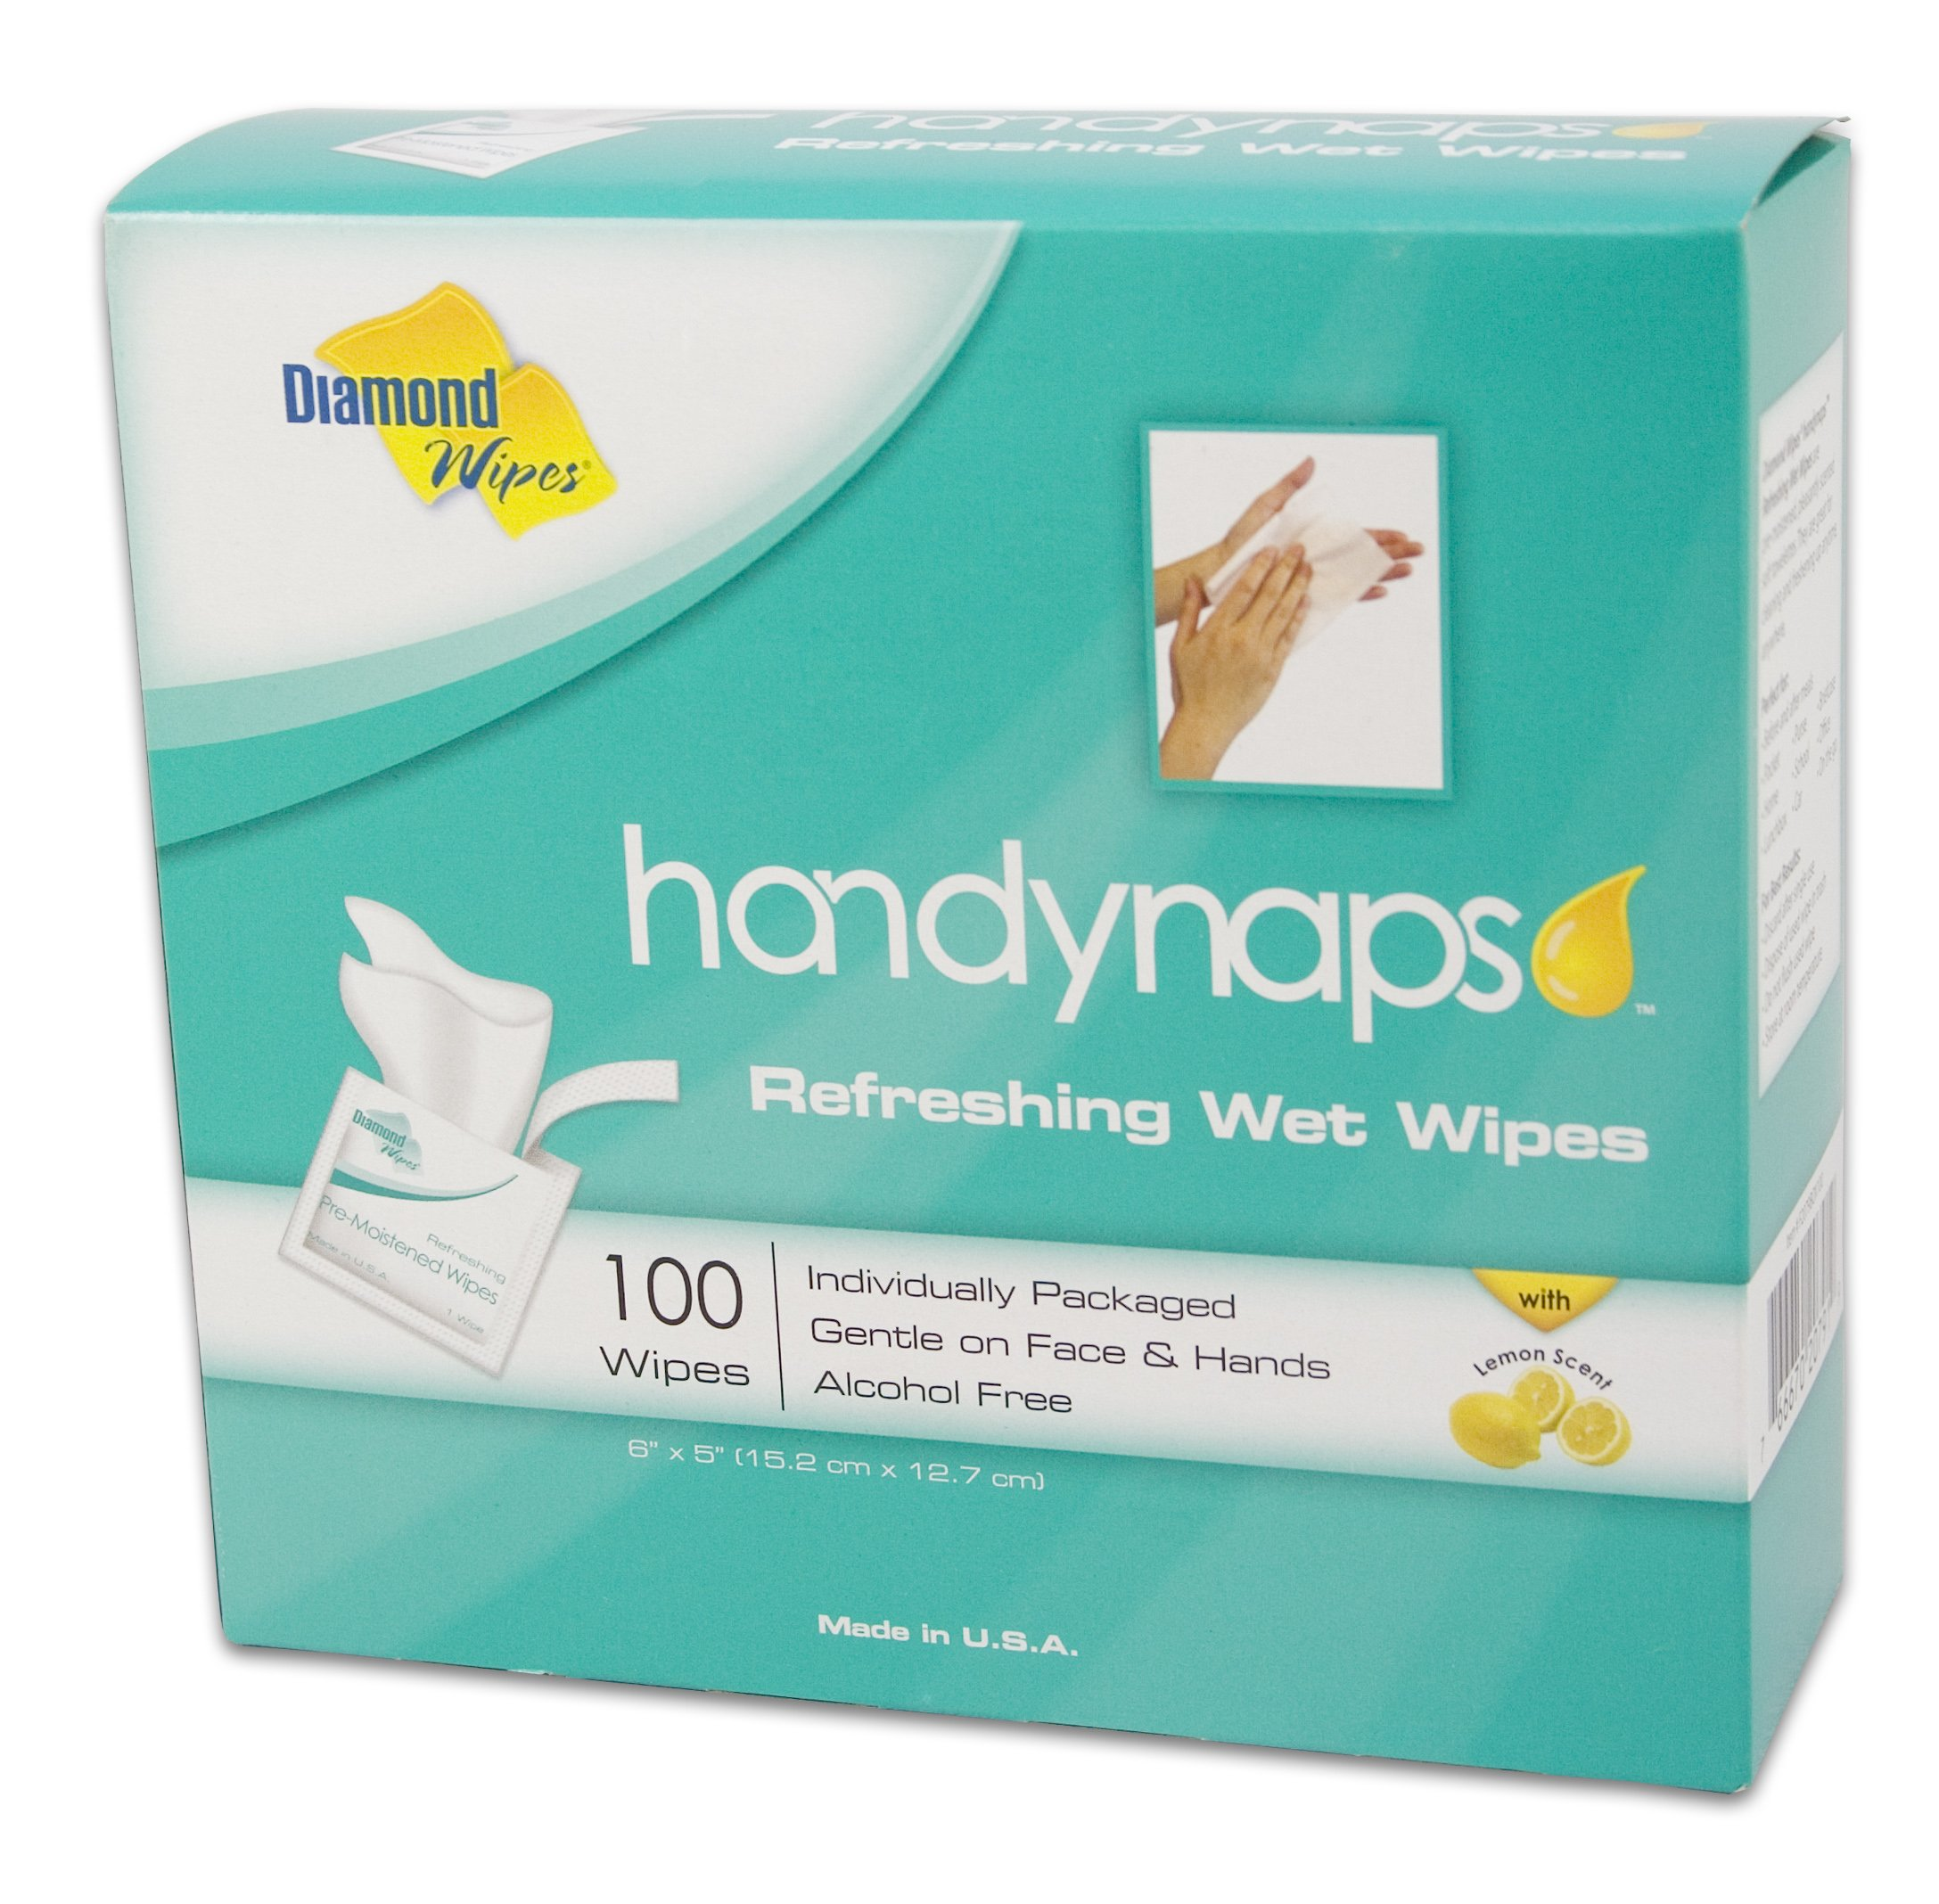 Handynaps Pre-Moistened Refreshing Hand Cleaning Wet Wipes, Alcohol Free, for General Cleaning Purpose, Individually Wrapped 100 Count Box